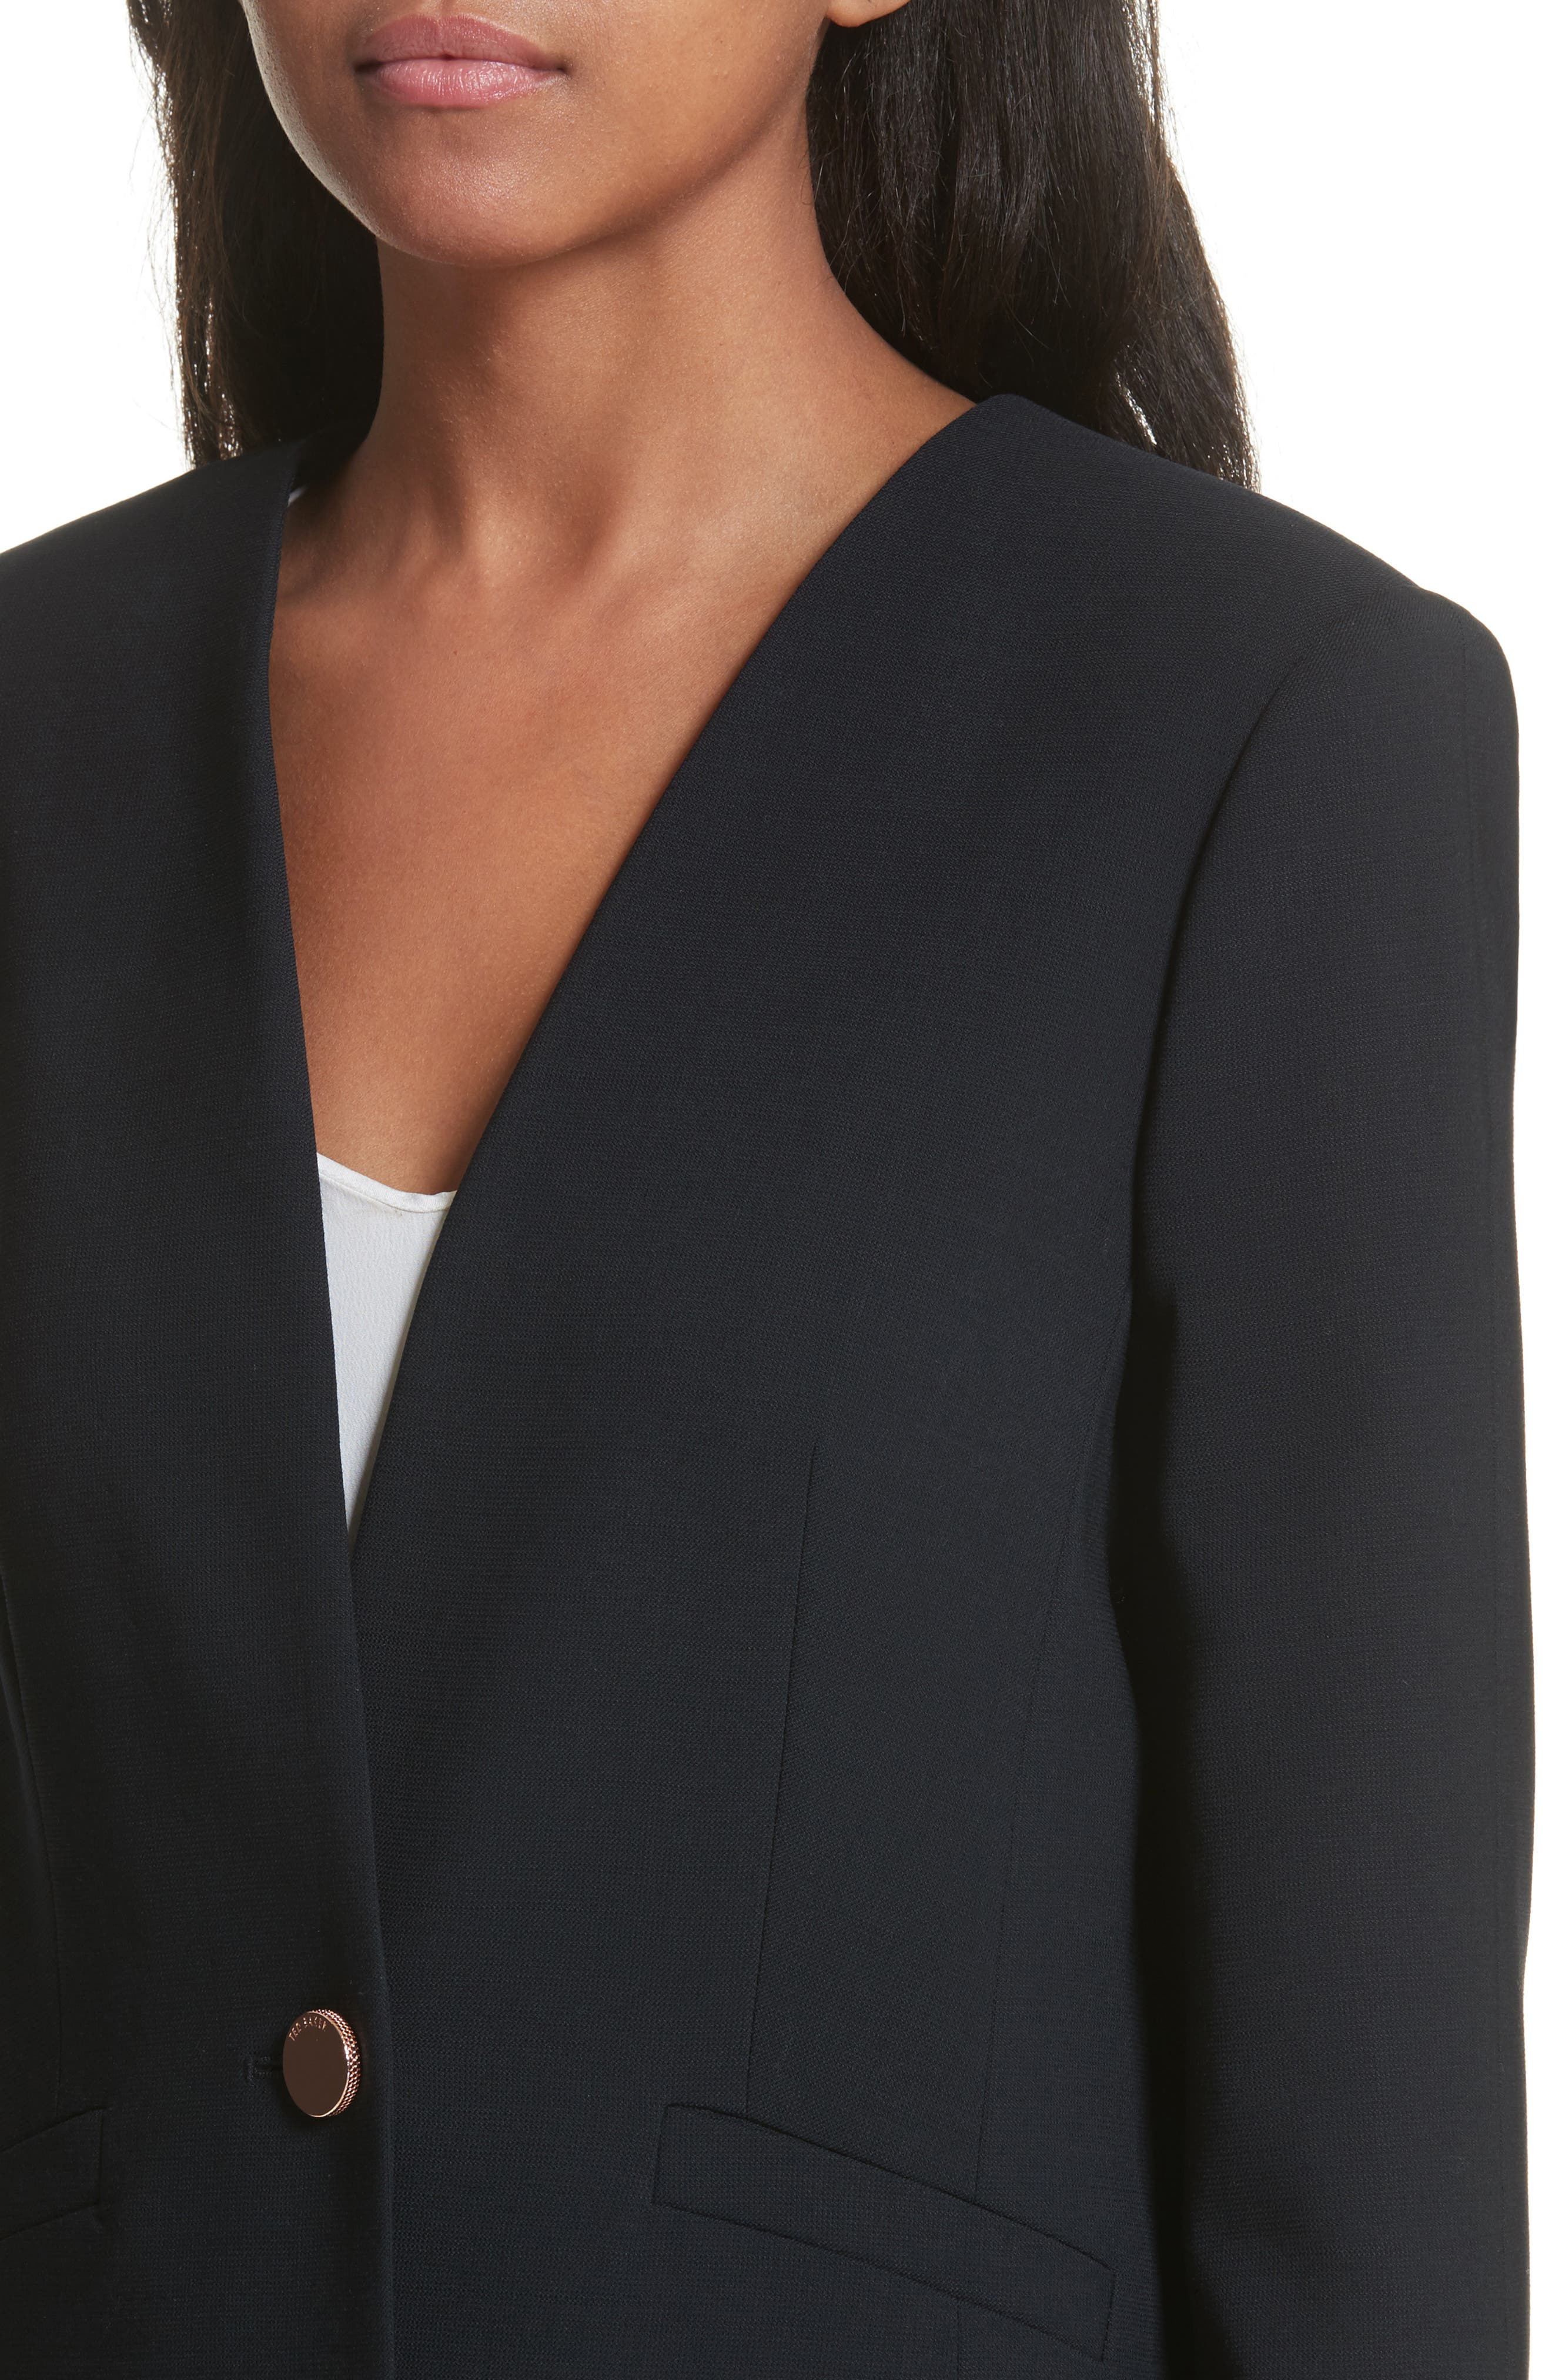 TED BAKER LONDON,                             Ted Working Title Collarless Stretch Wool Jacket,                             Alternate thumbnail 4, color,                             410